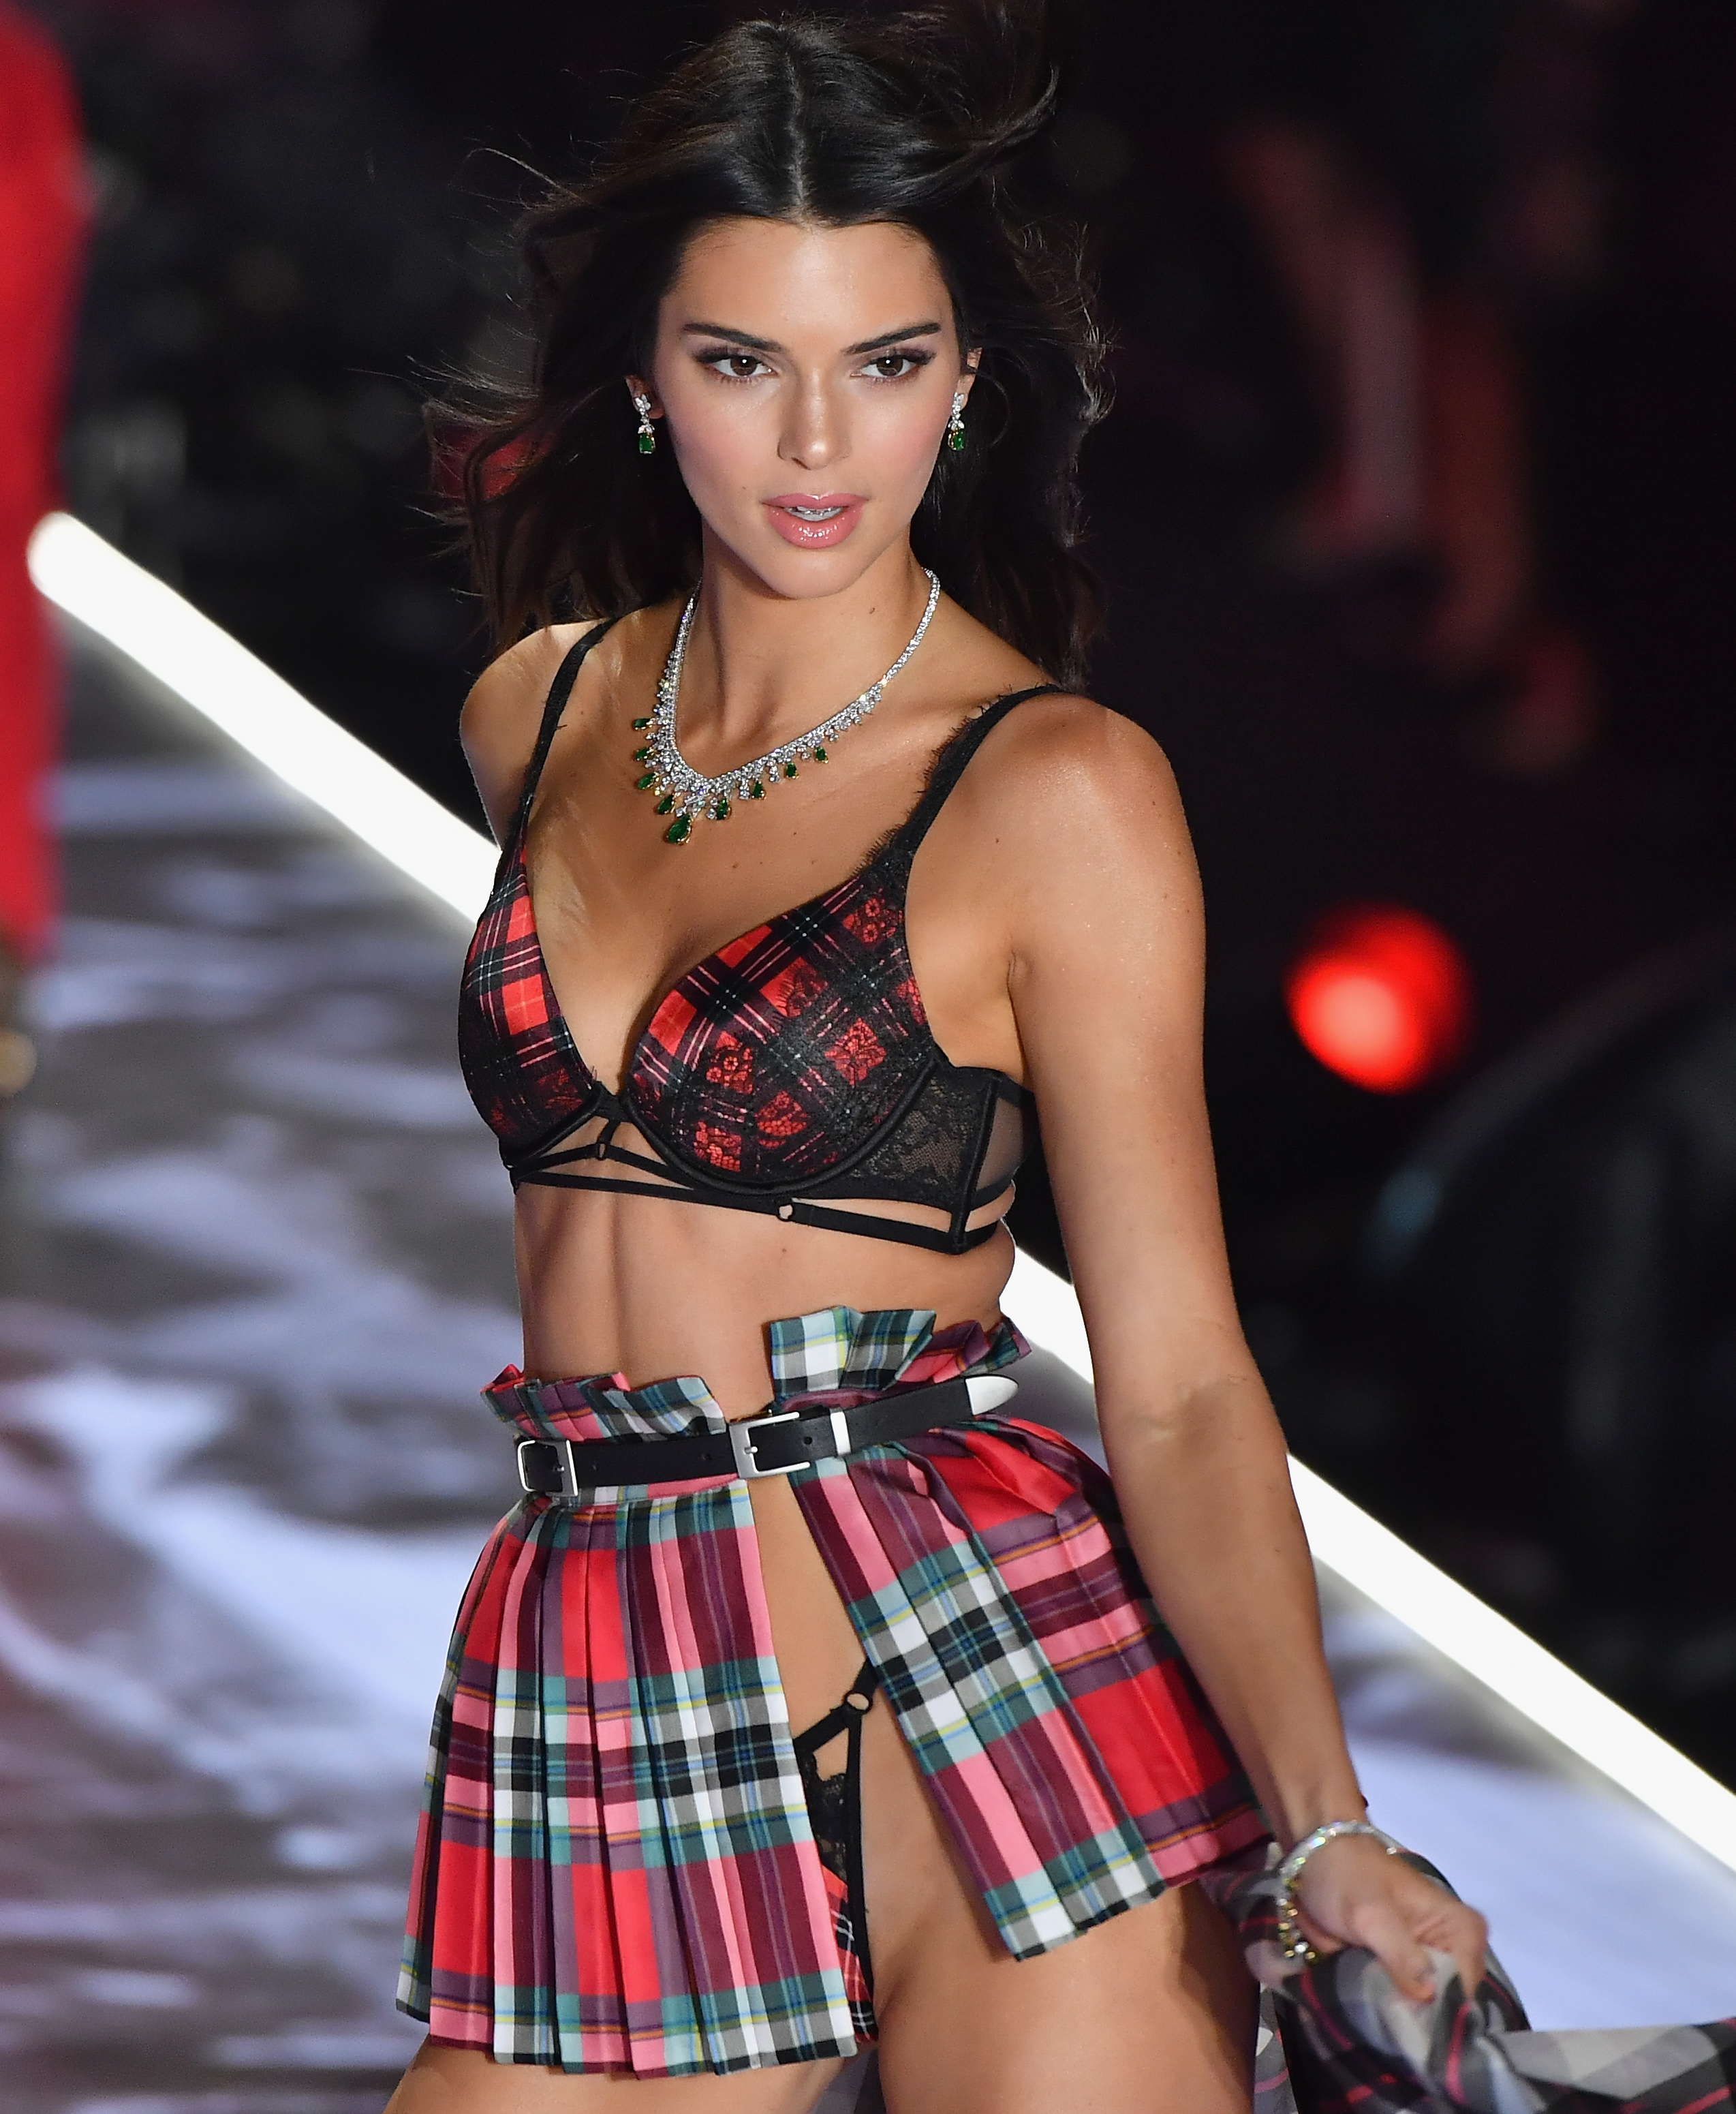 US model Kendall Jenner. (Photo by Angela Weiss / AFP)